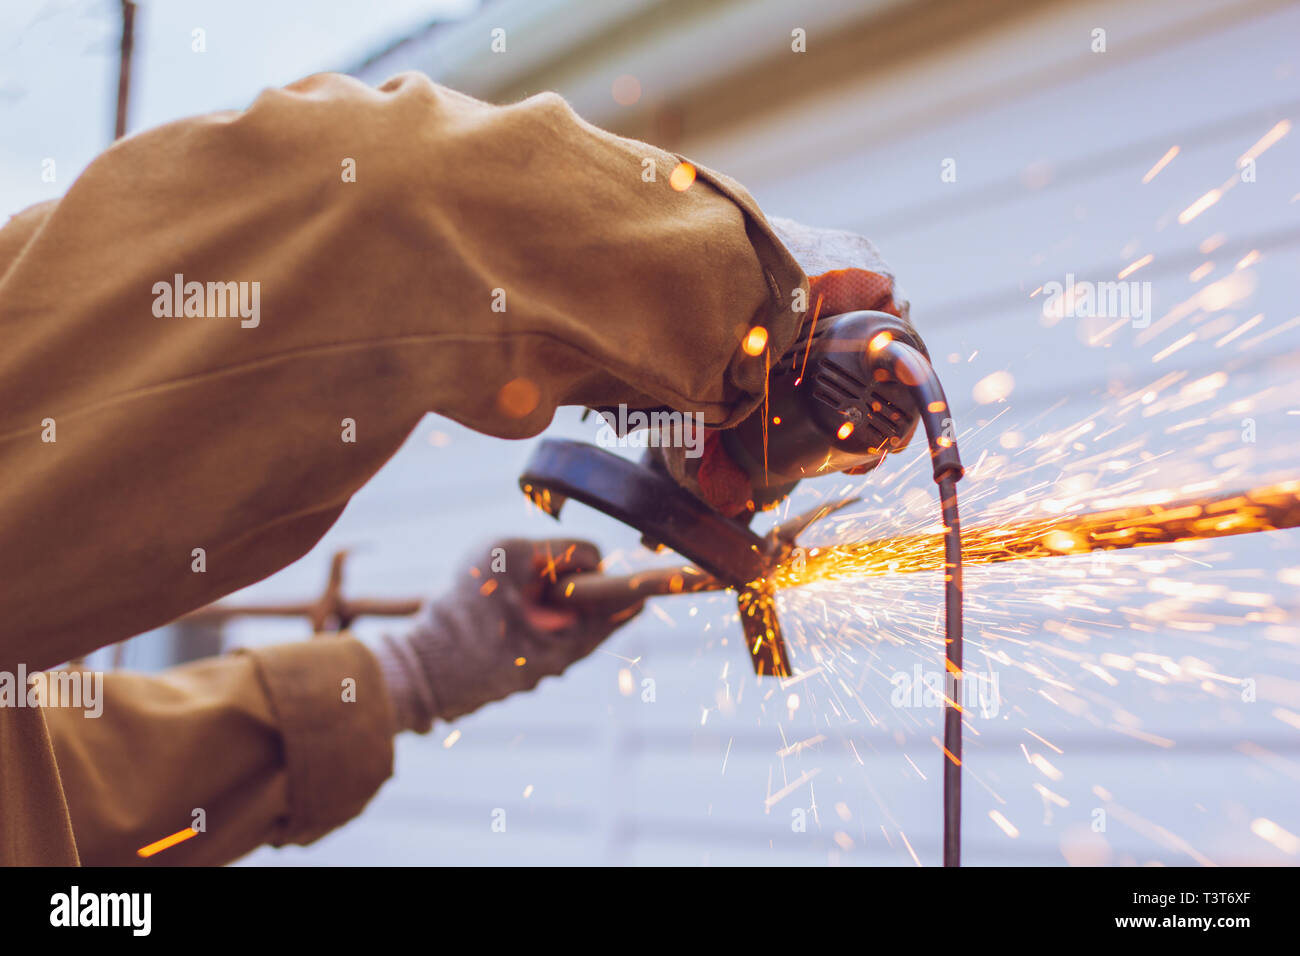 Sparks from the metal and grinder fly from under the grinding disc - Stock Image